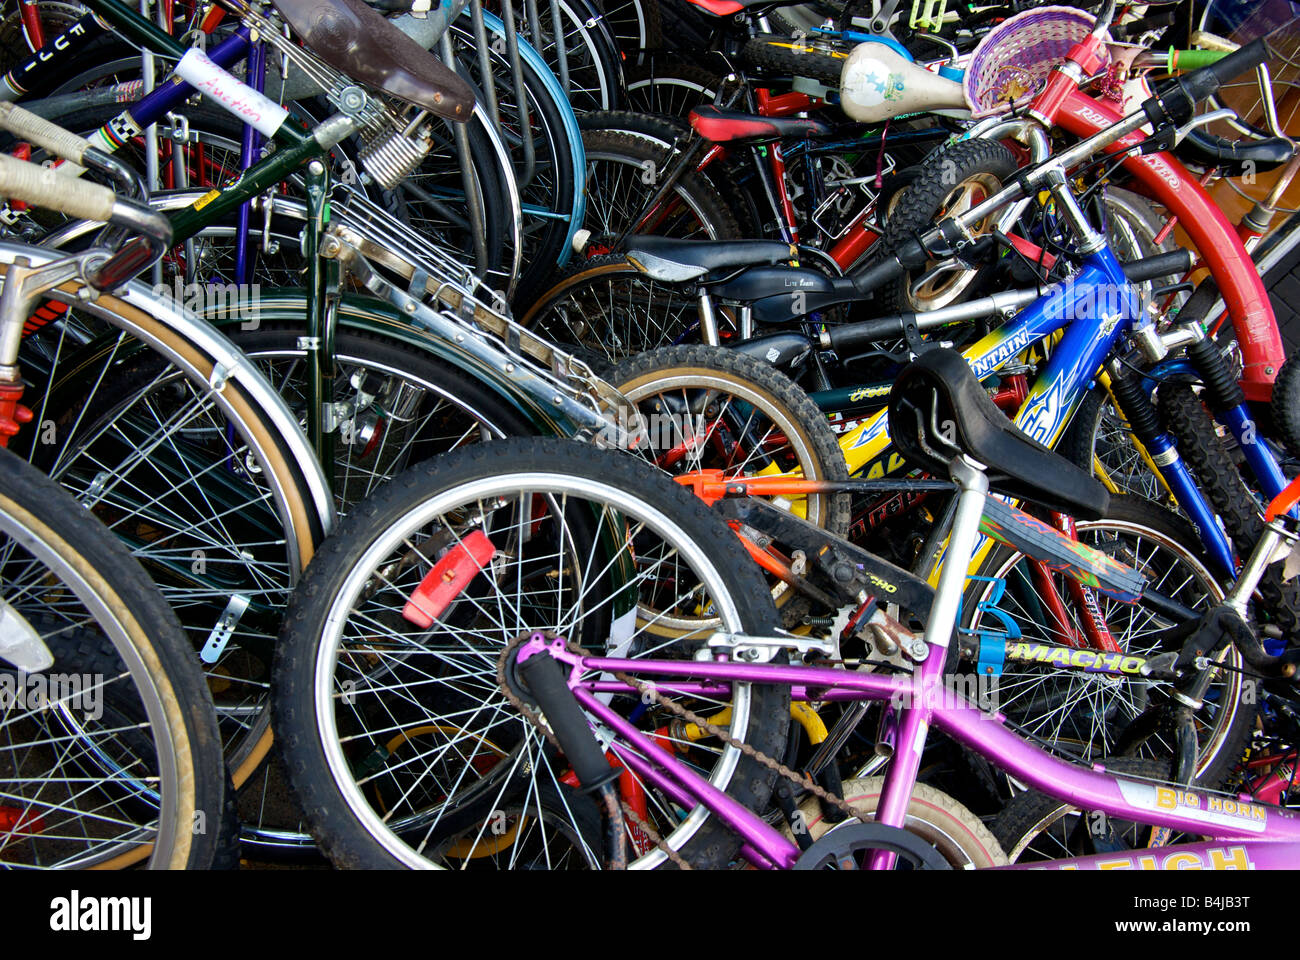 Pile Of Used Bicycles Stock Photos & Pile Of Used Bicycles Stock